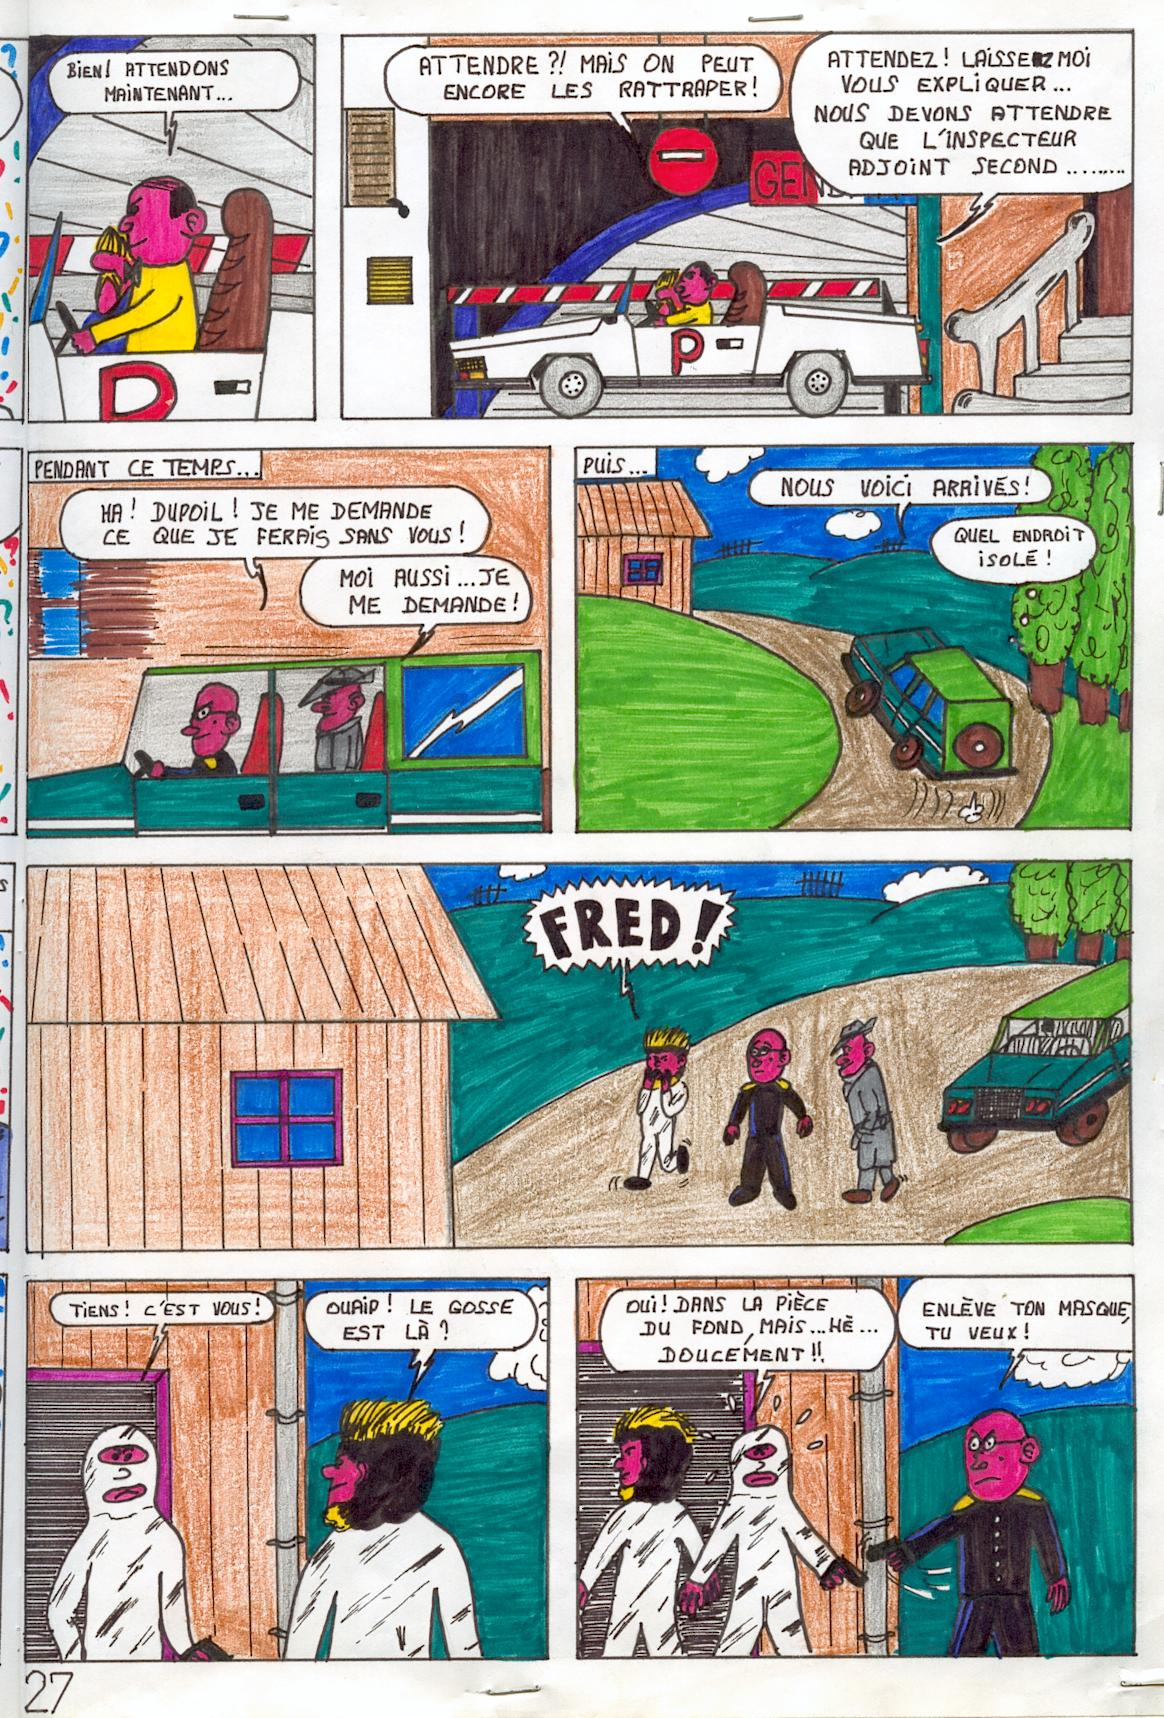 BD 2 page 27